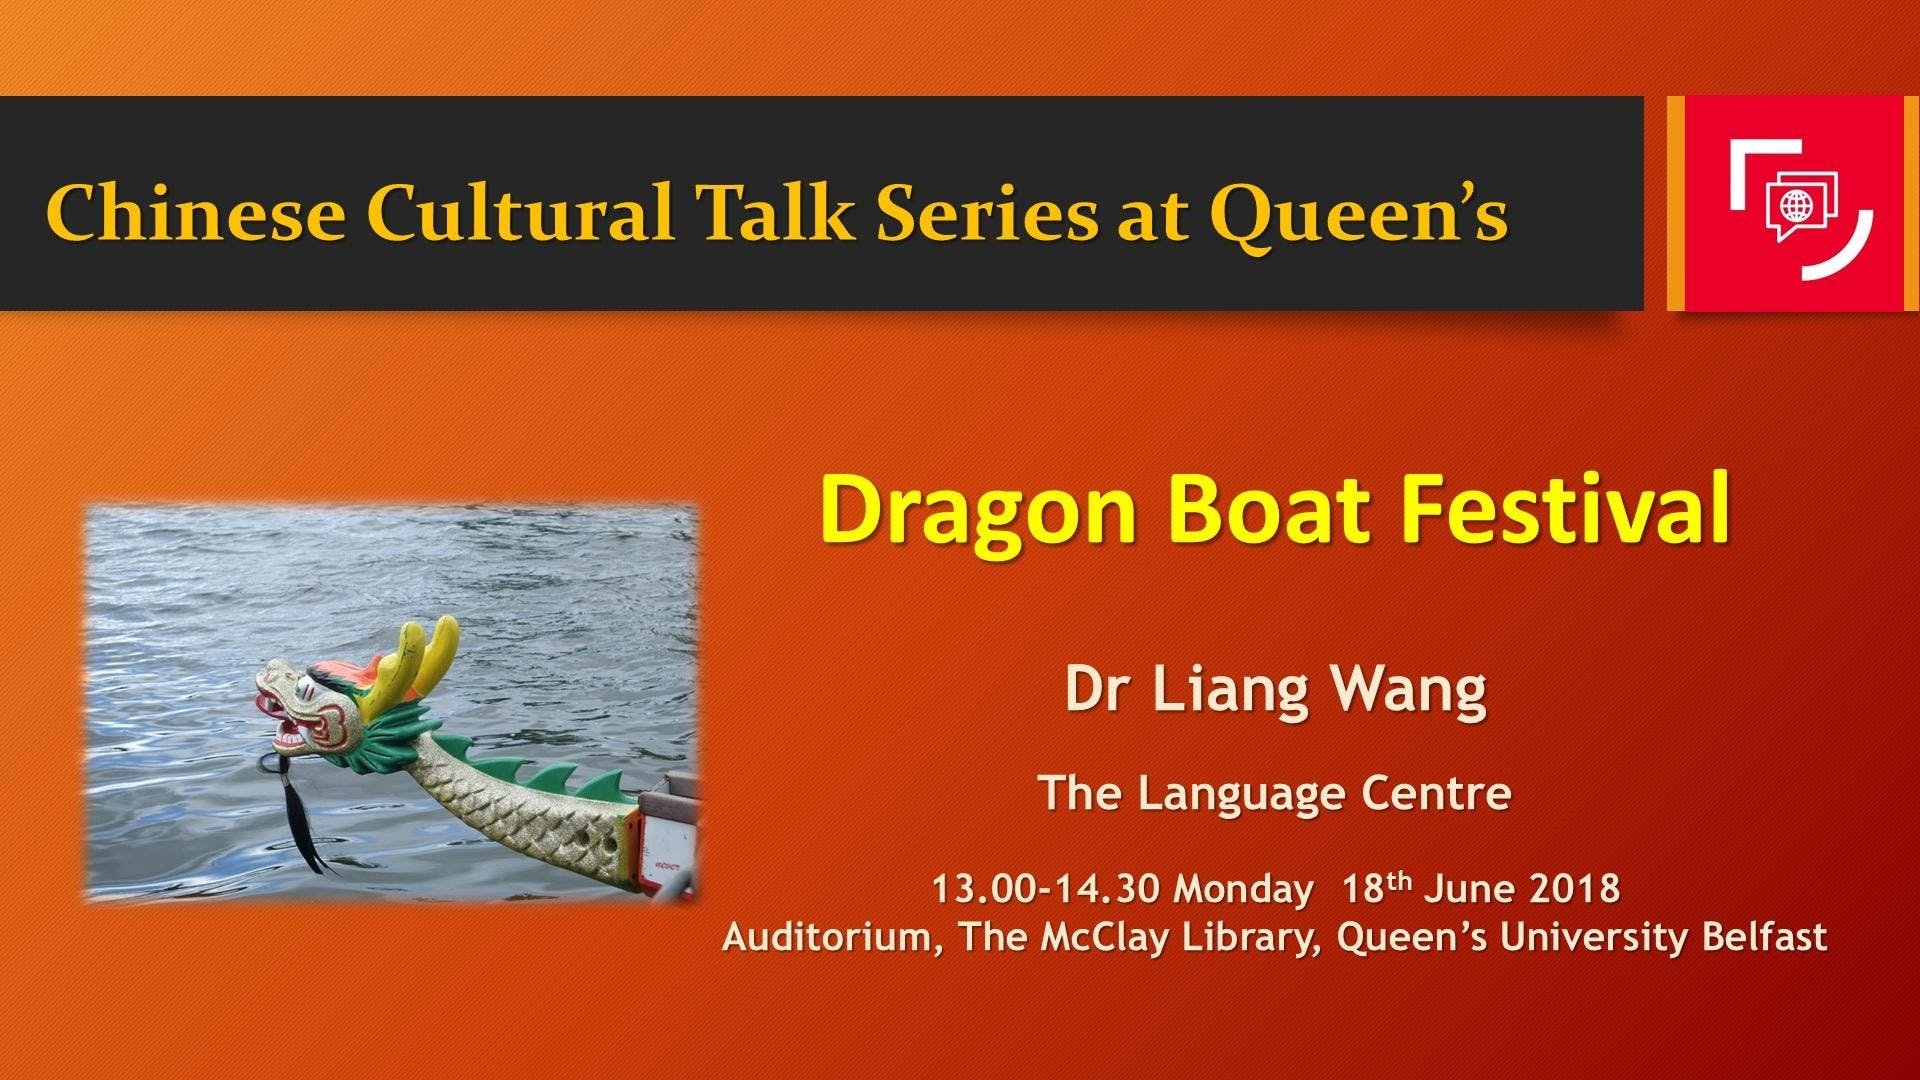 Chinese Culture Talk Series at Queen's - Dragon Boat Festival